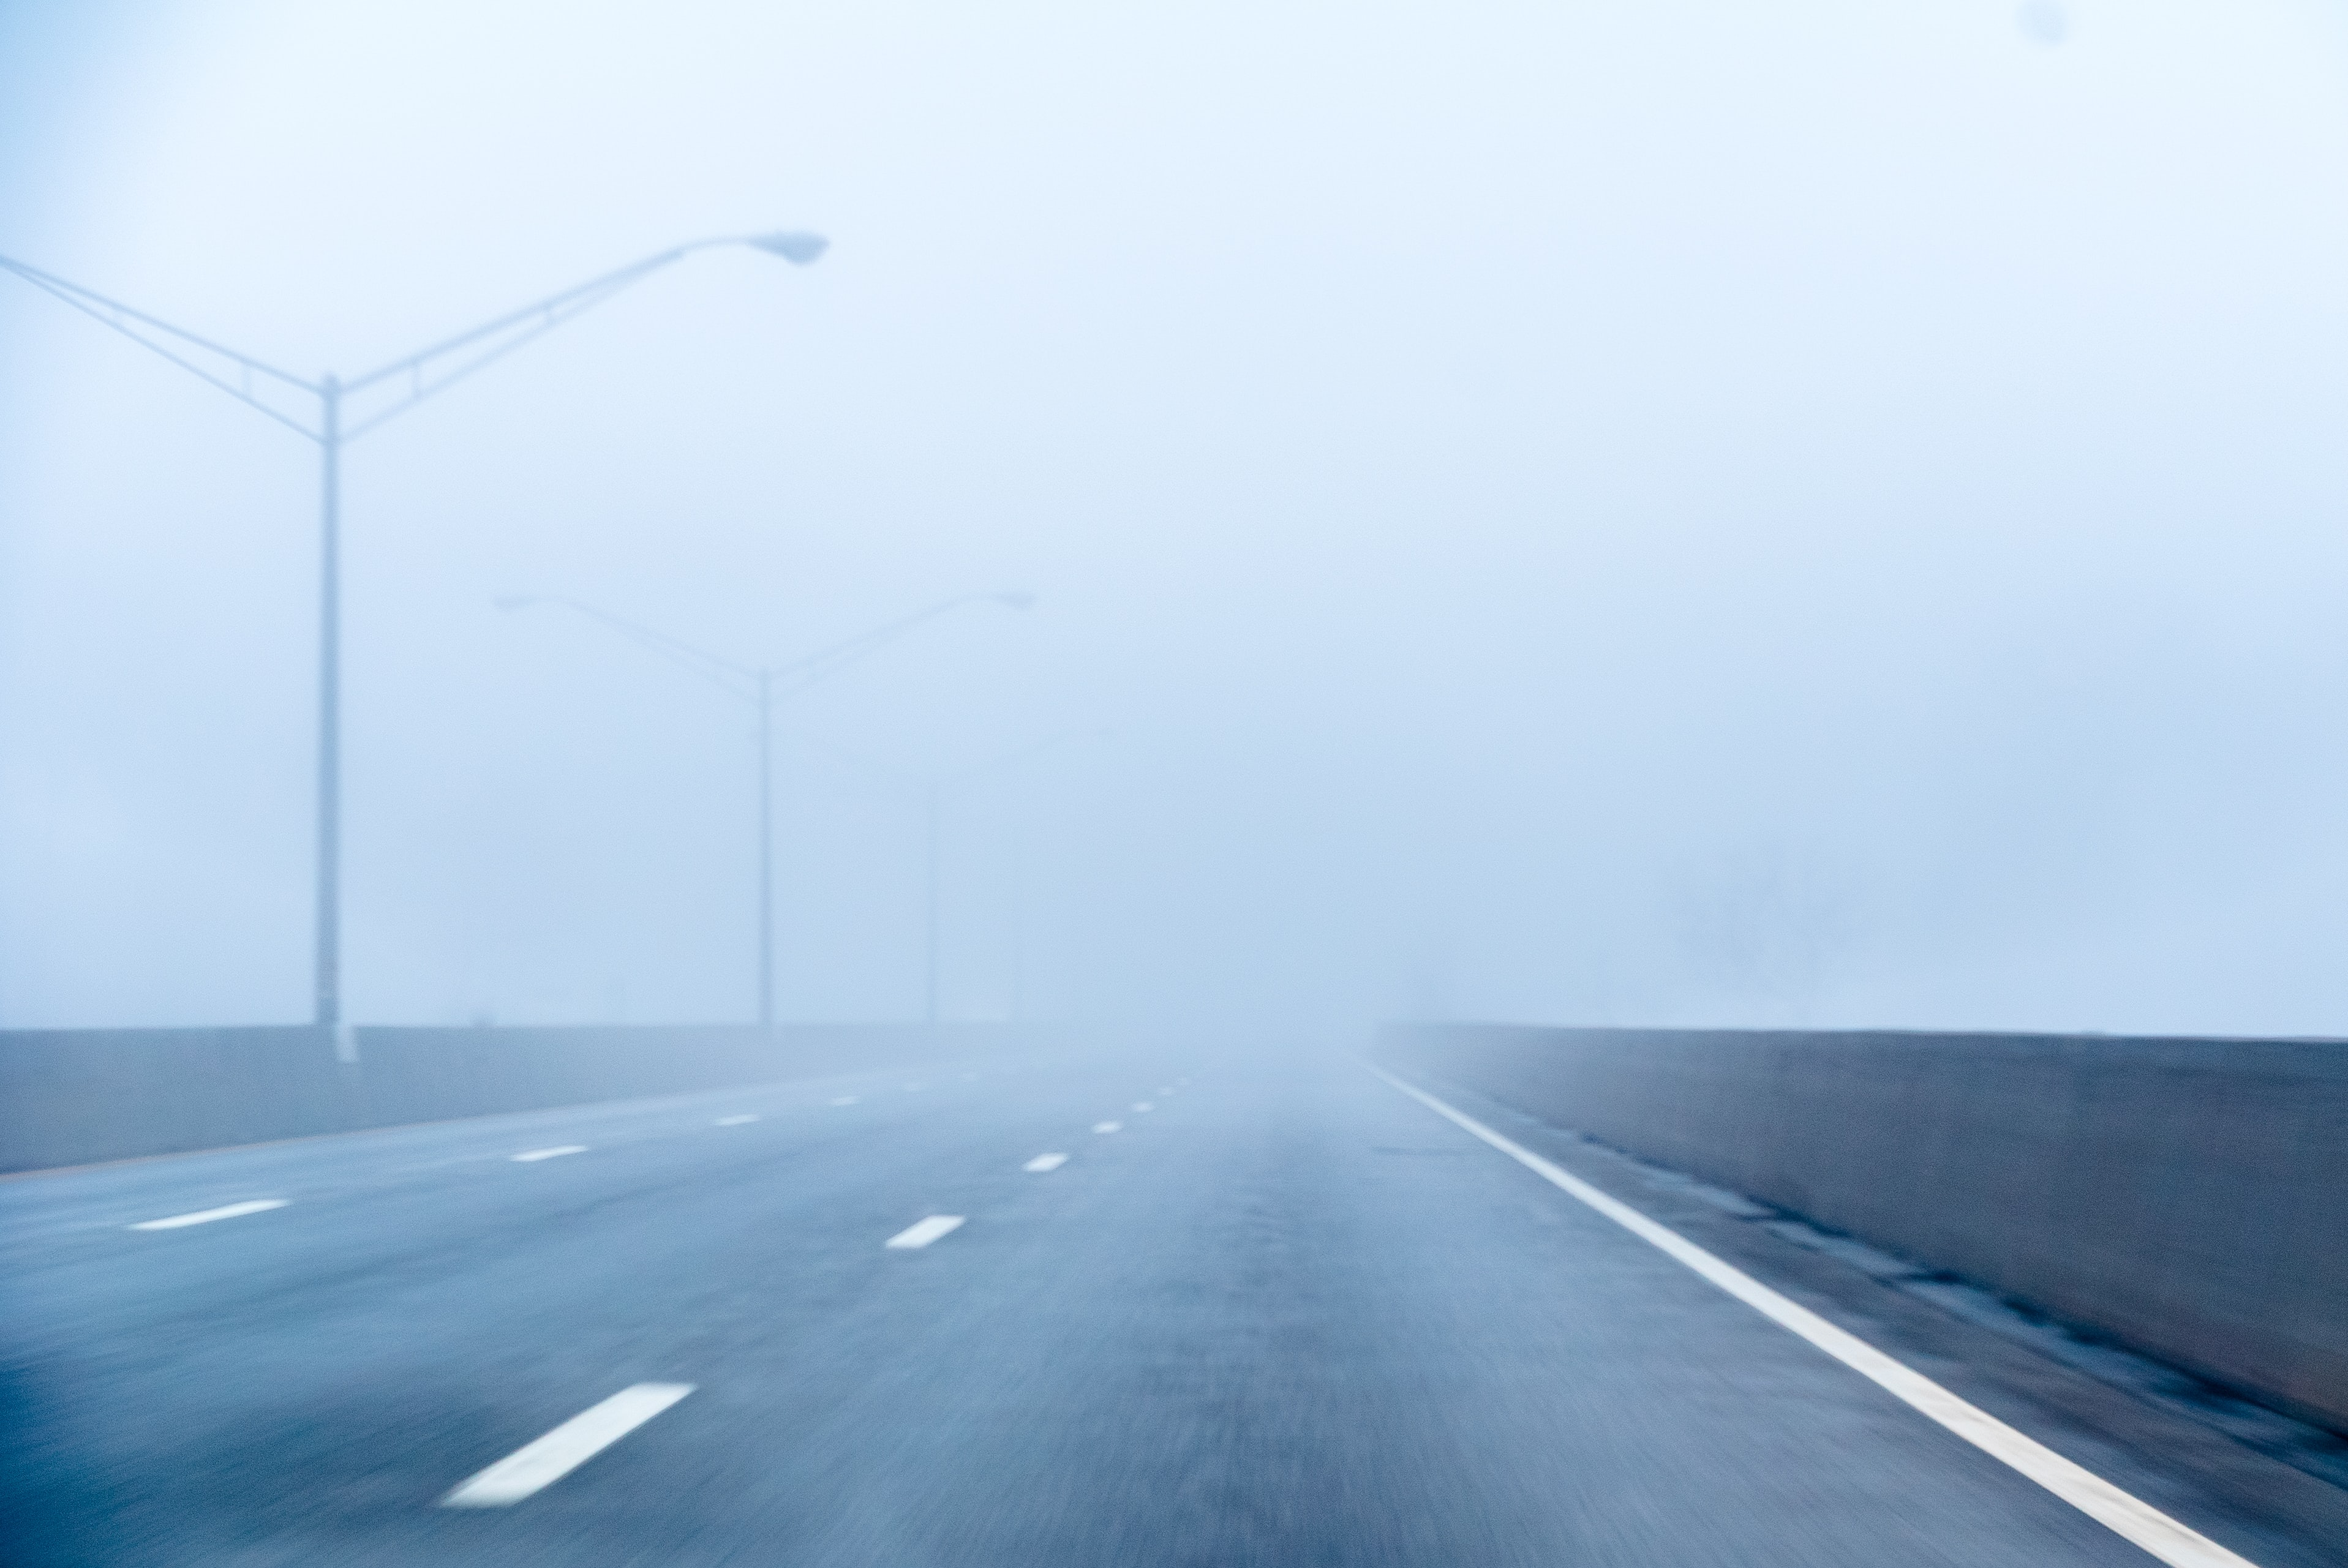 Foggy empty highway with streetlights on a morning drive